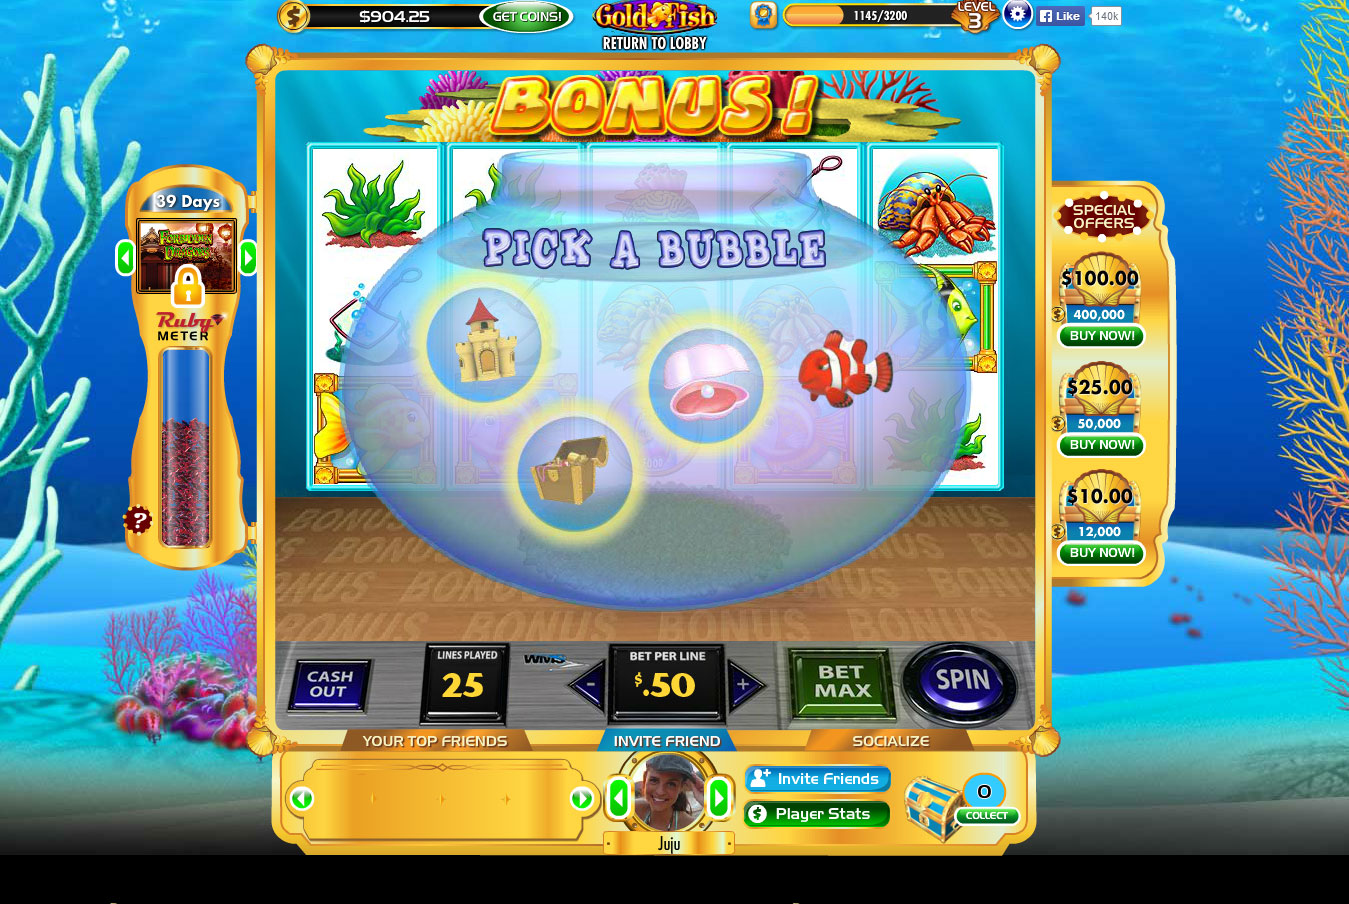 Gameplay surveys review free paid survey 4 u for Big fish casino free slot games